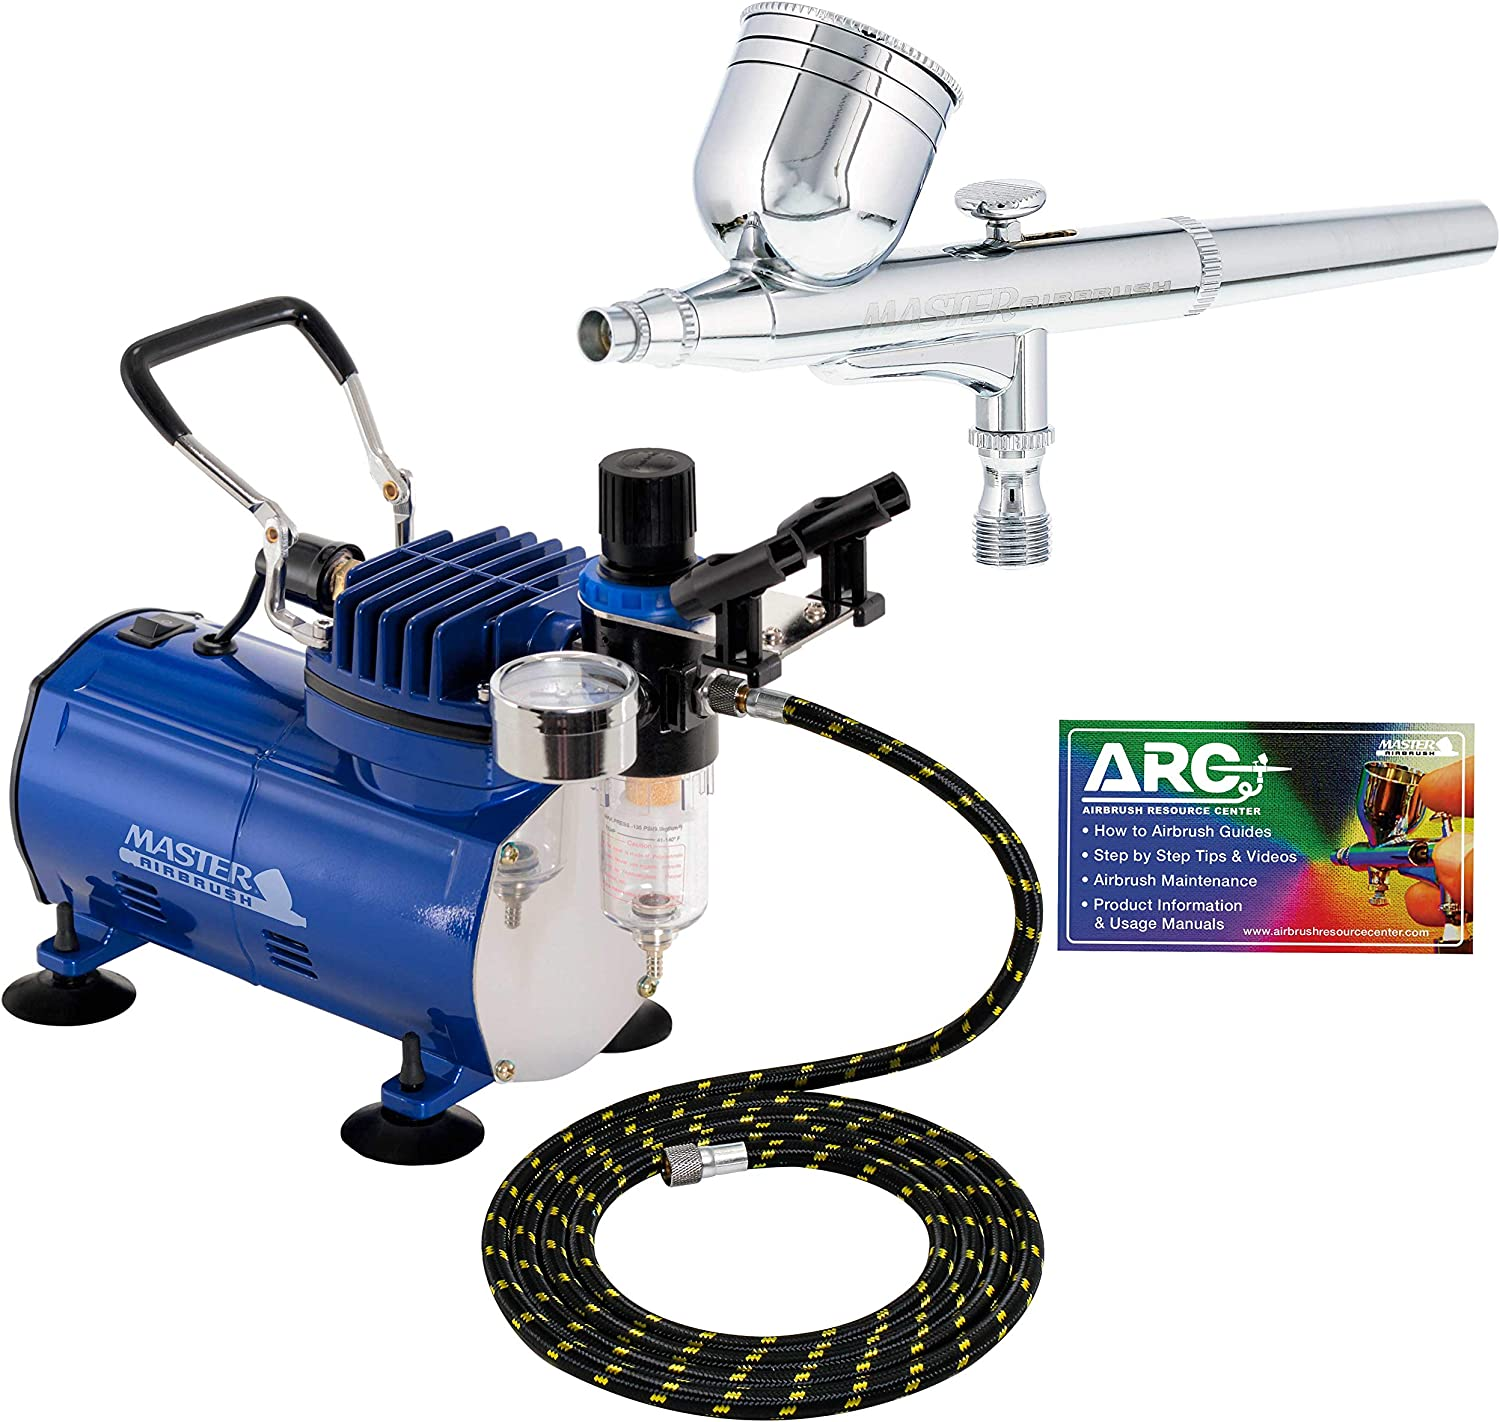 Master Airbrush Multi-purpose Gravity Feed Dual-action Airbrush Kit with 6 Foot Hose and a Powerful 1/5hp Single Piston Quiet Air Compressor: Arts, Crafts & Sewing